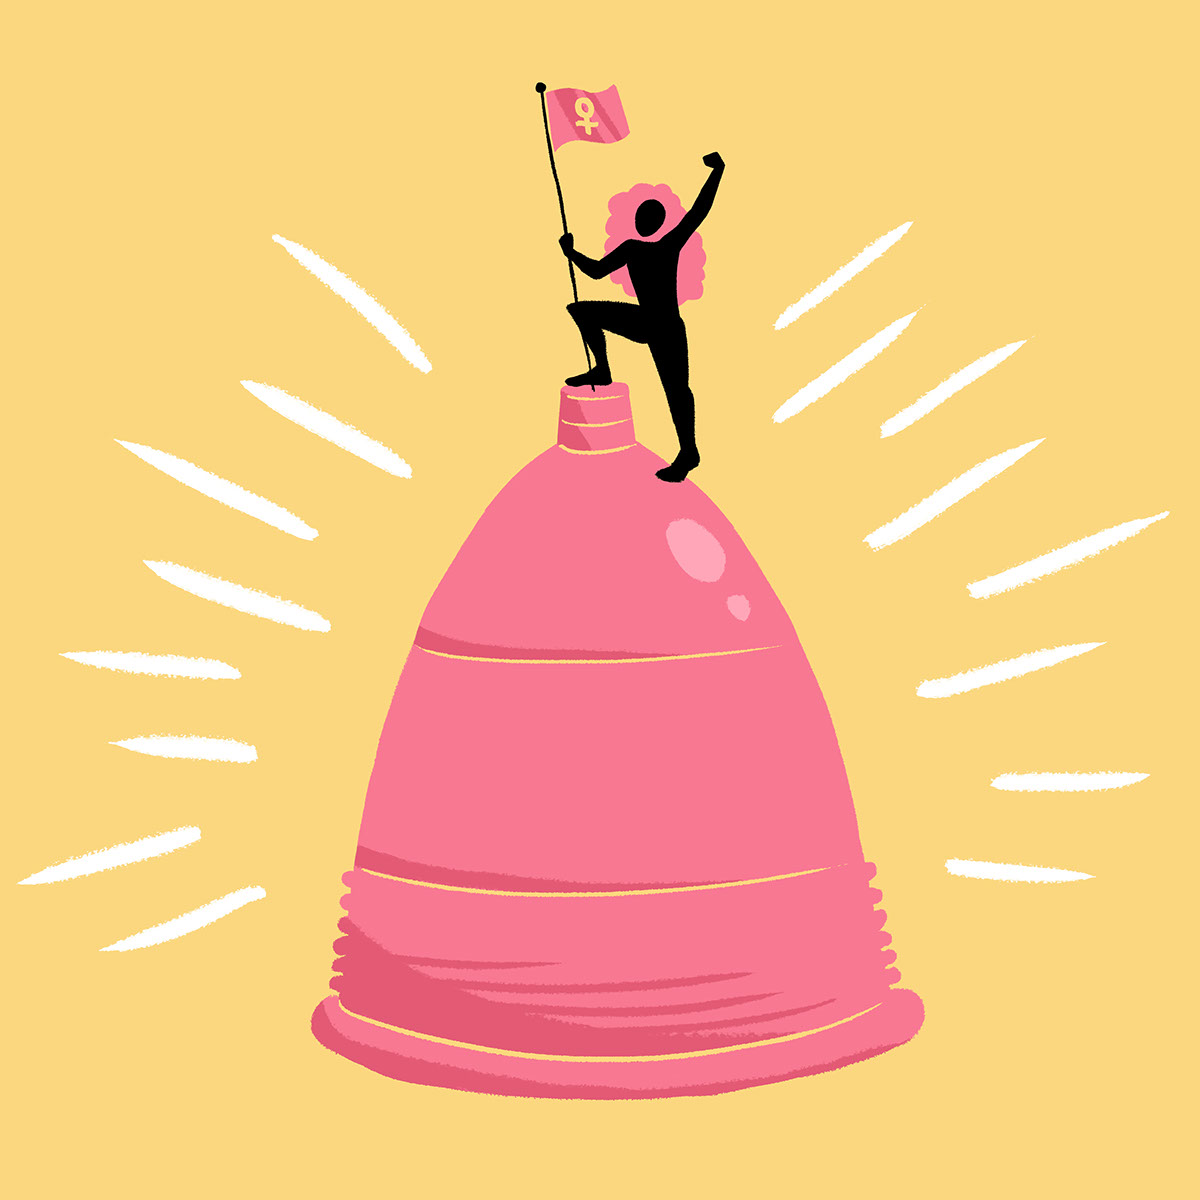 Conquering the Menstrual Cup on Behance